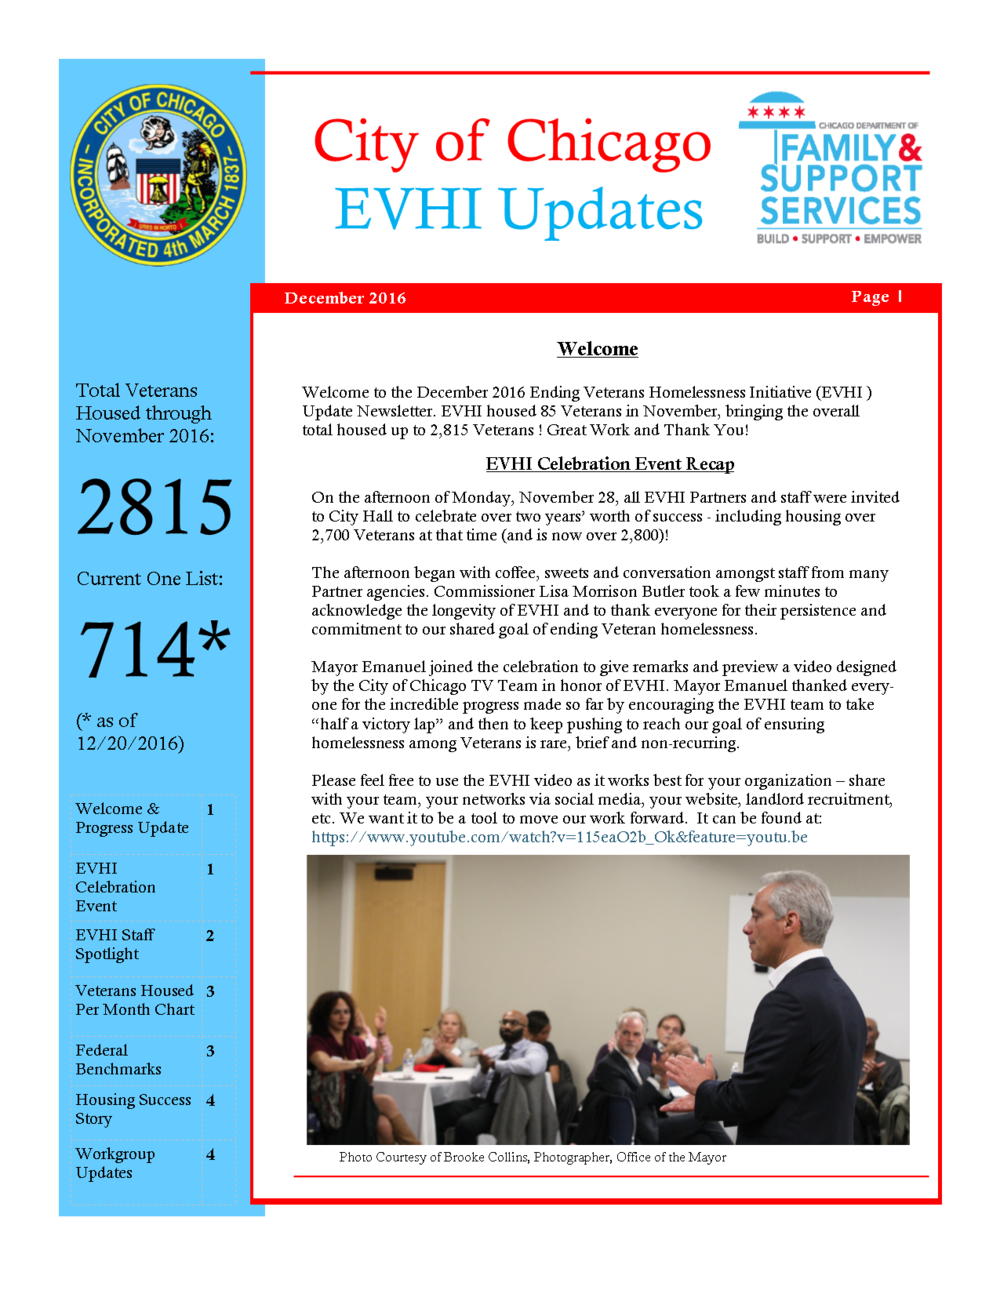 December 2016 EVHI Updates_pg1.png